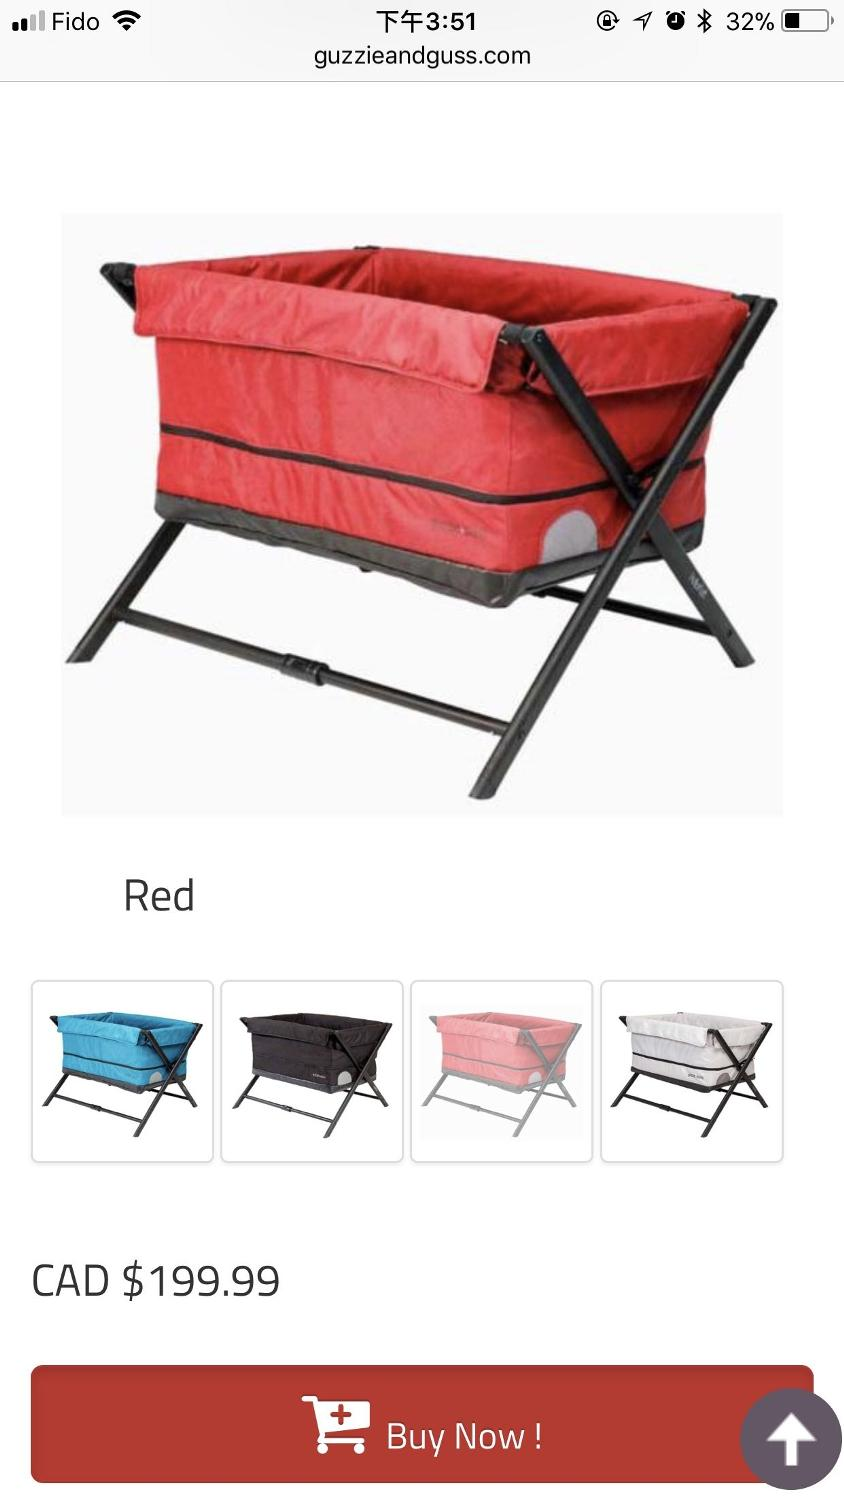 dd823805165 Find more New Guzzie+ Guss Red Adjustable Playpen Travel Crib Bassinet  Habitat Retails  199.99 Plus Tax for sale at up to 90% off - Victoria